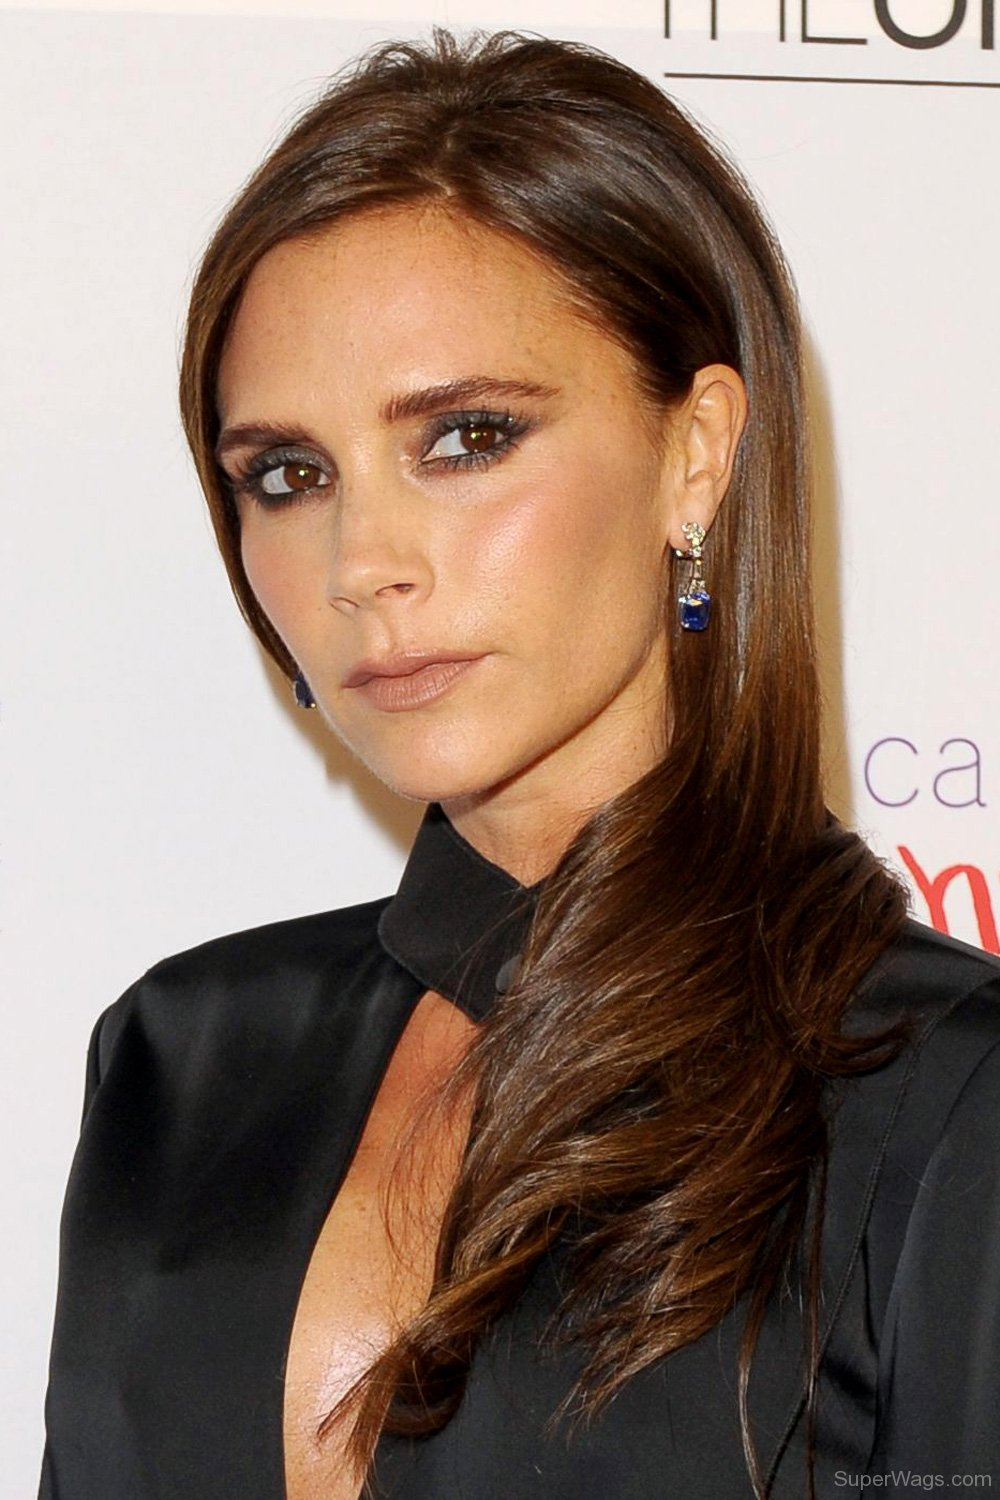 Victoria Beckham Beautiful Eyes | Super WAGS - Hottest Wives and ...